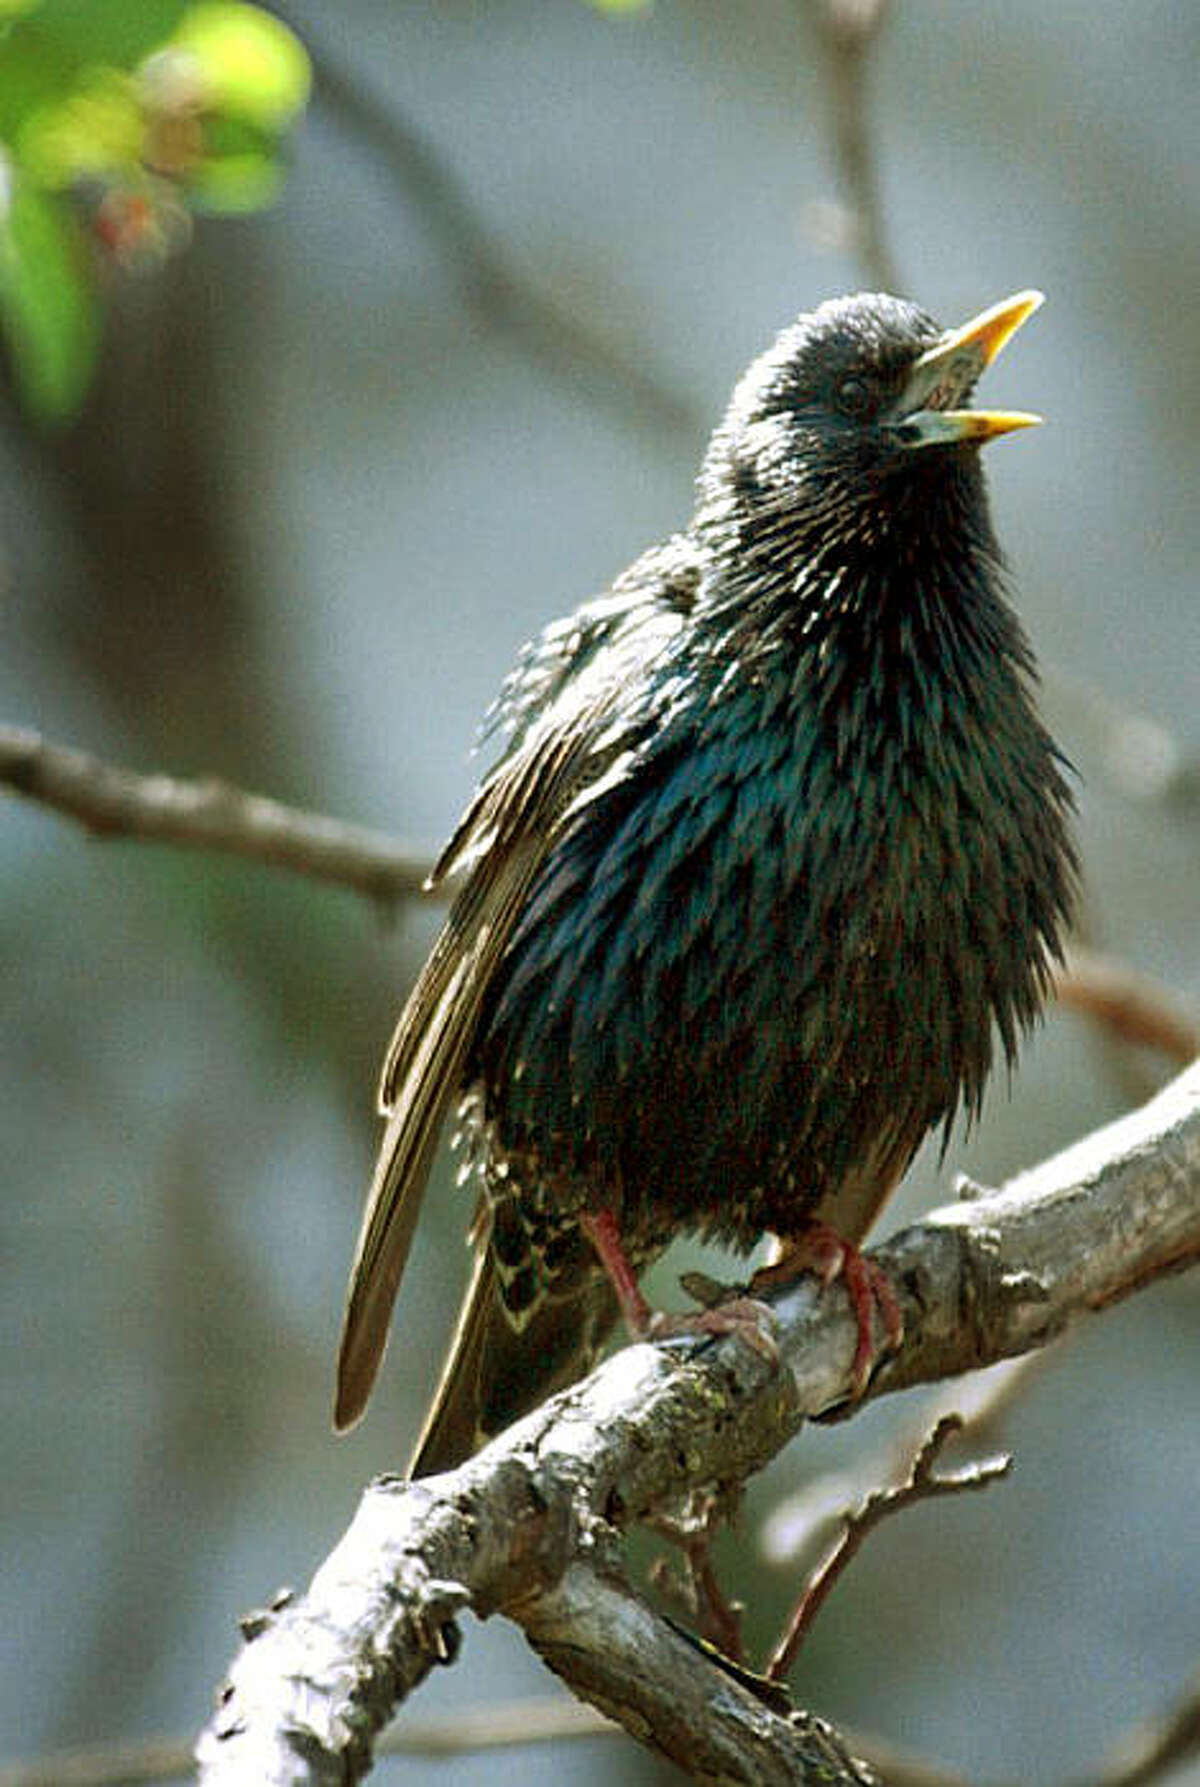 FILE - This undated photo provided by the University of California at San Diego shows an undated photo of a starling. In the early 1890s, about 100 European starlings were released in New York City's Central Park by a group dedicated to bringing to America every bird ever mentioned by Shakespeare. (AP Photo/University of California at San Diego, Daniel Baleckaitis, File)